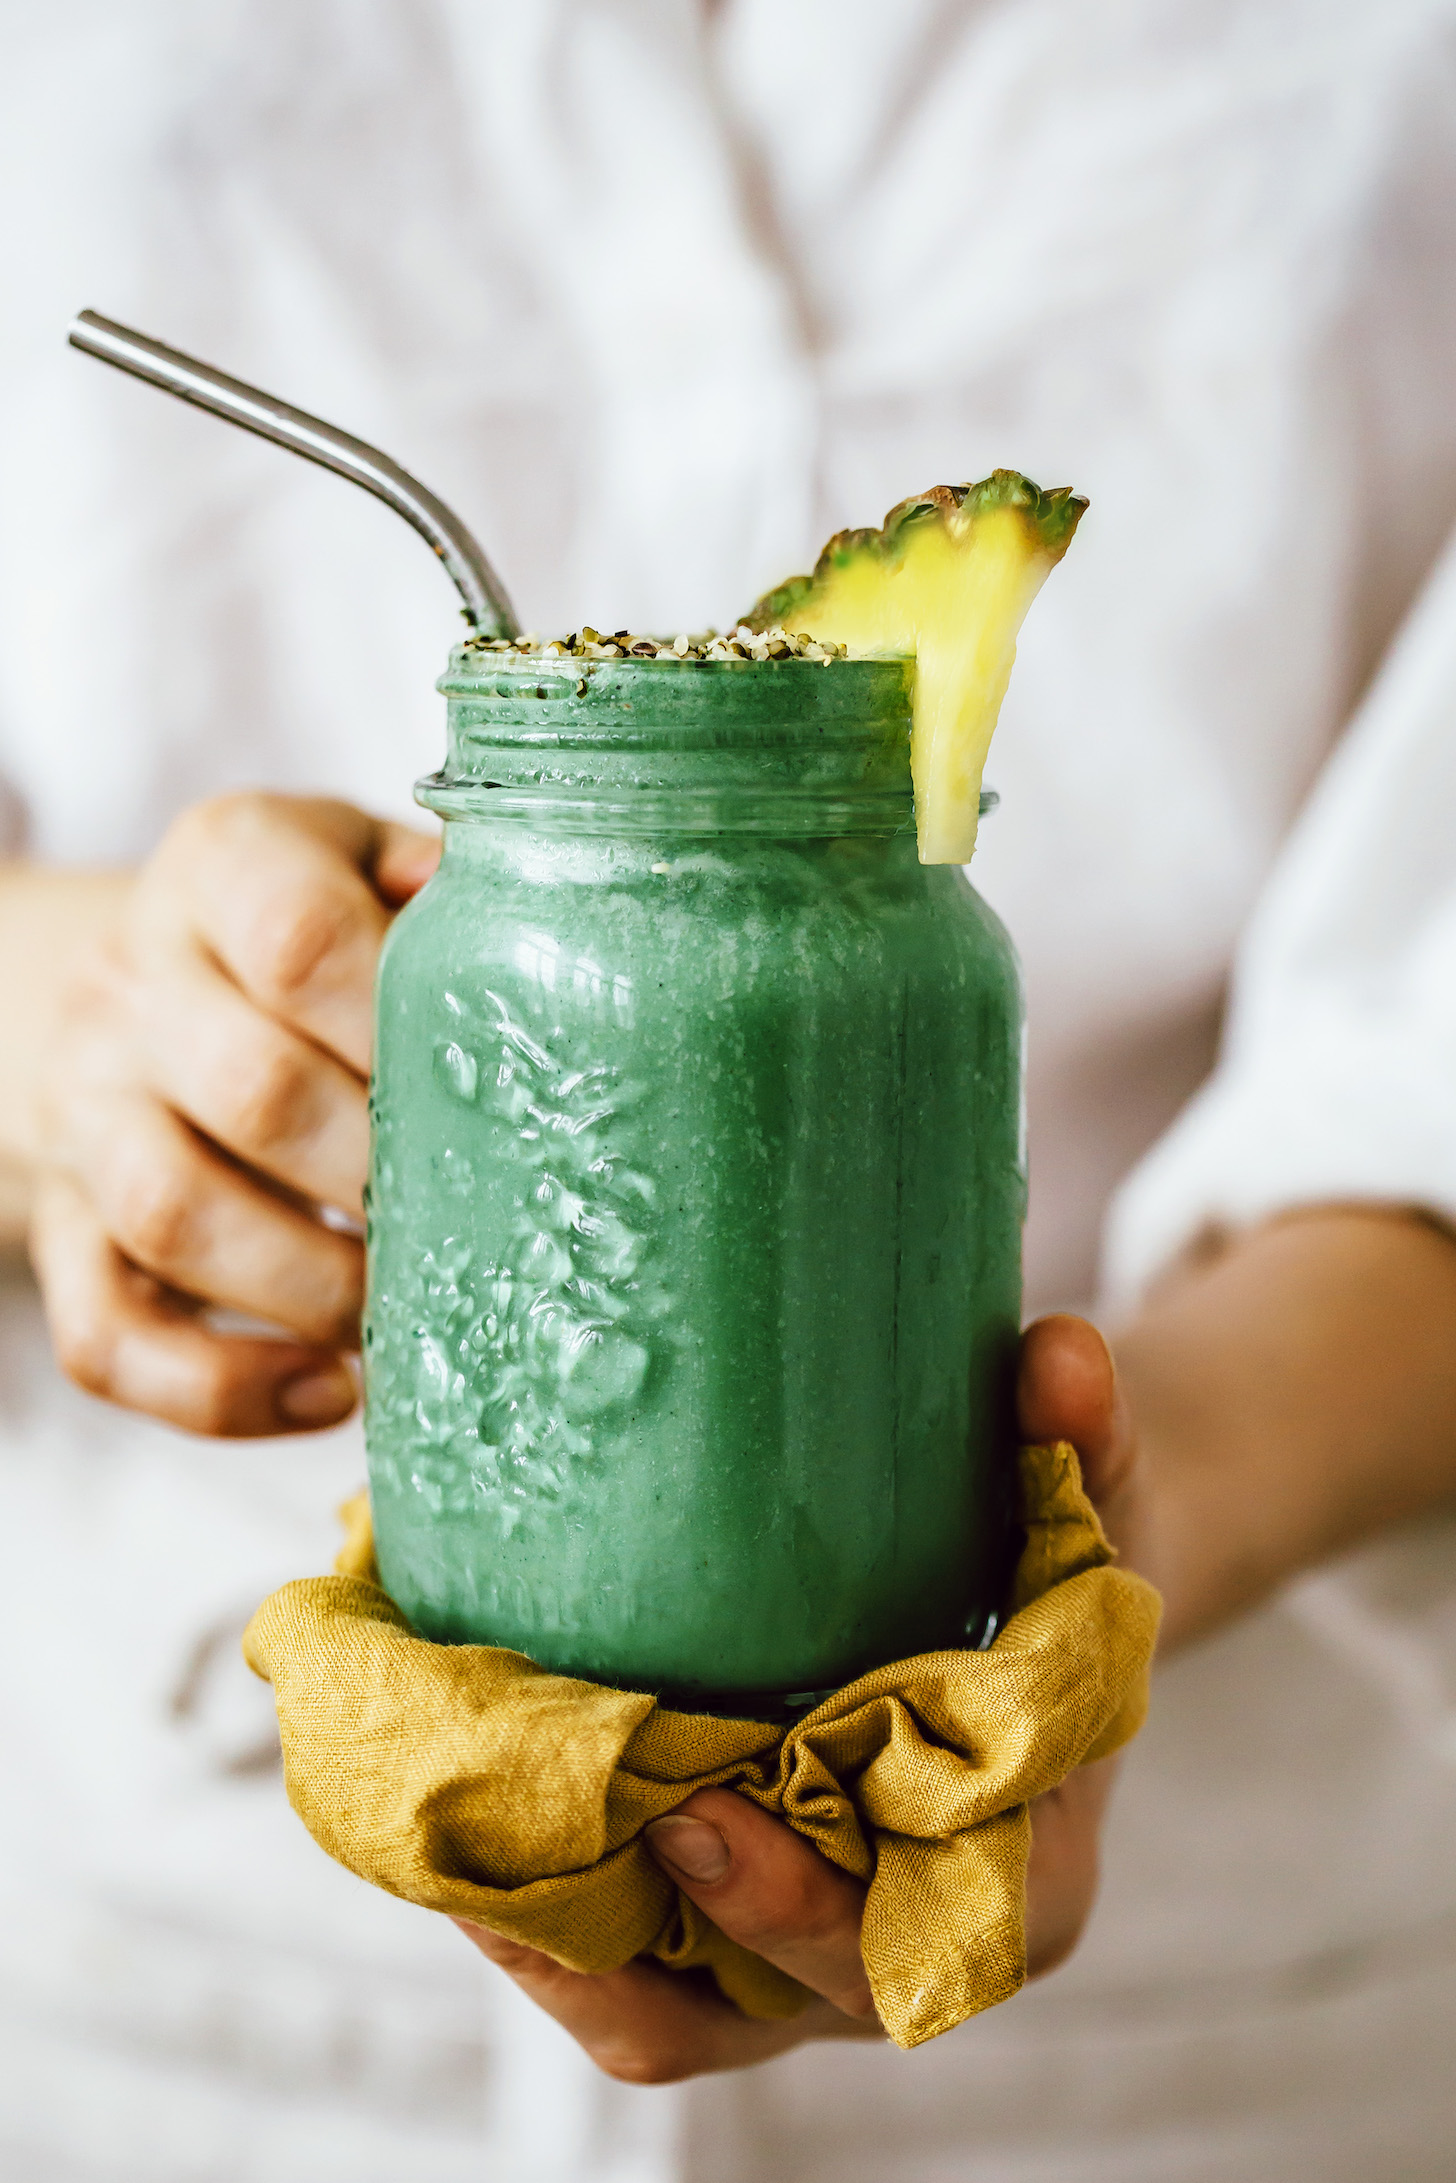 Holding a glass jar of our tropical green smoothie